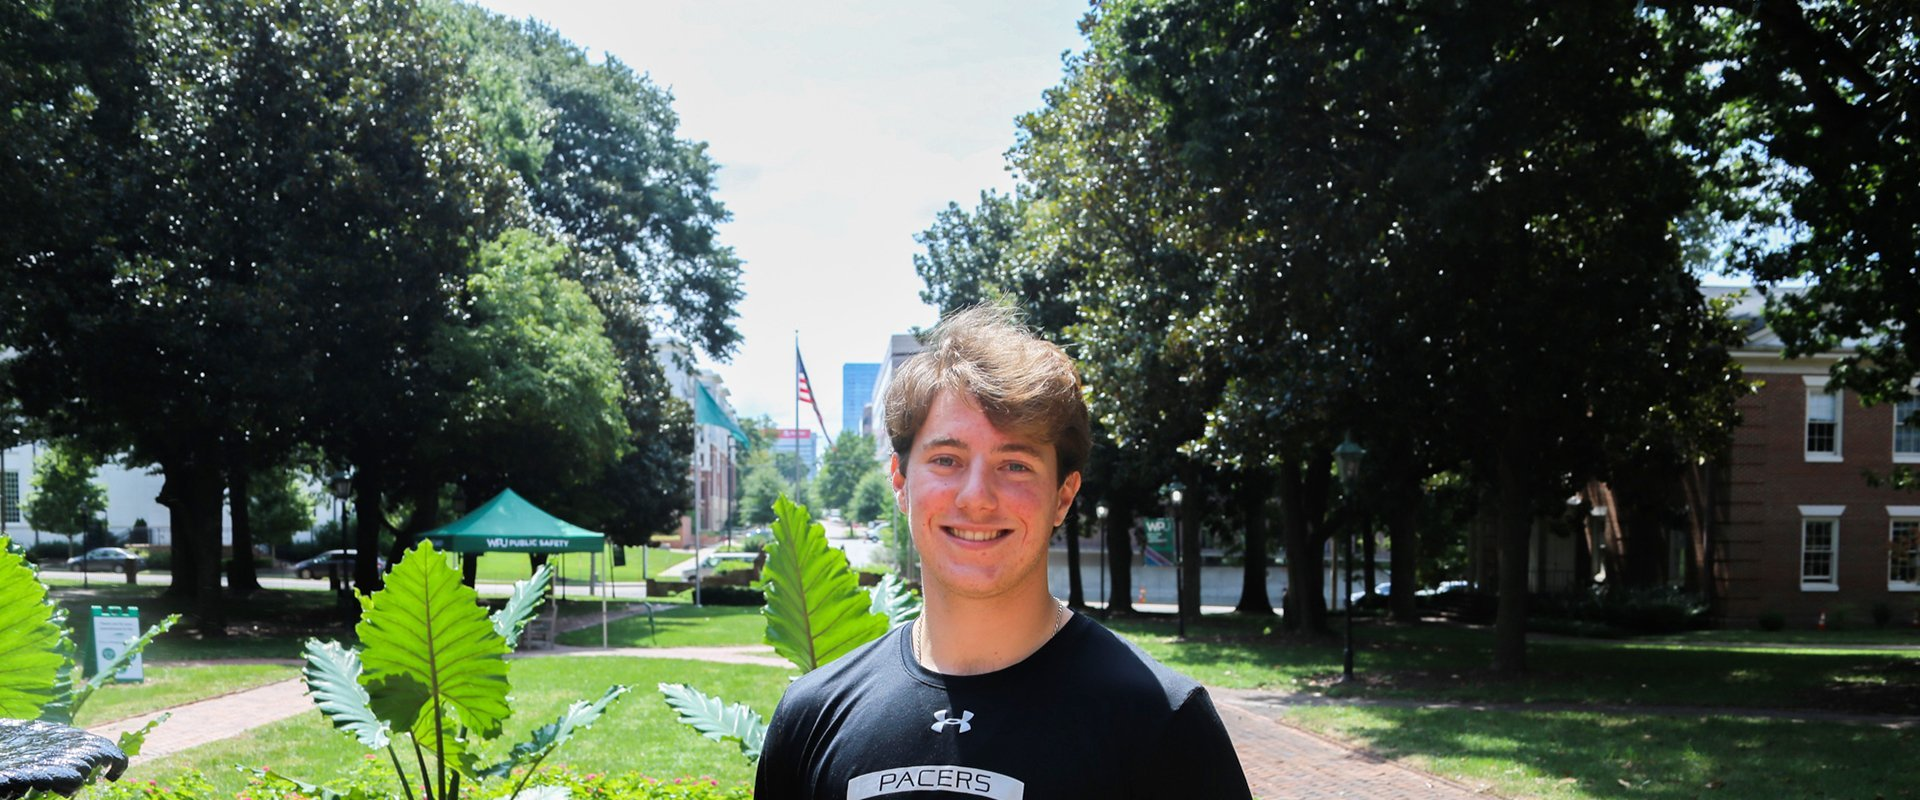 Nick Falso is an Environmental Science student at William Peace University - Meet Ryan Killilea, Admissions Recruiter